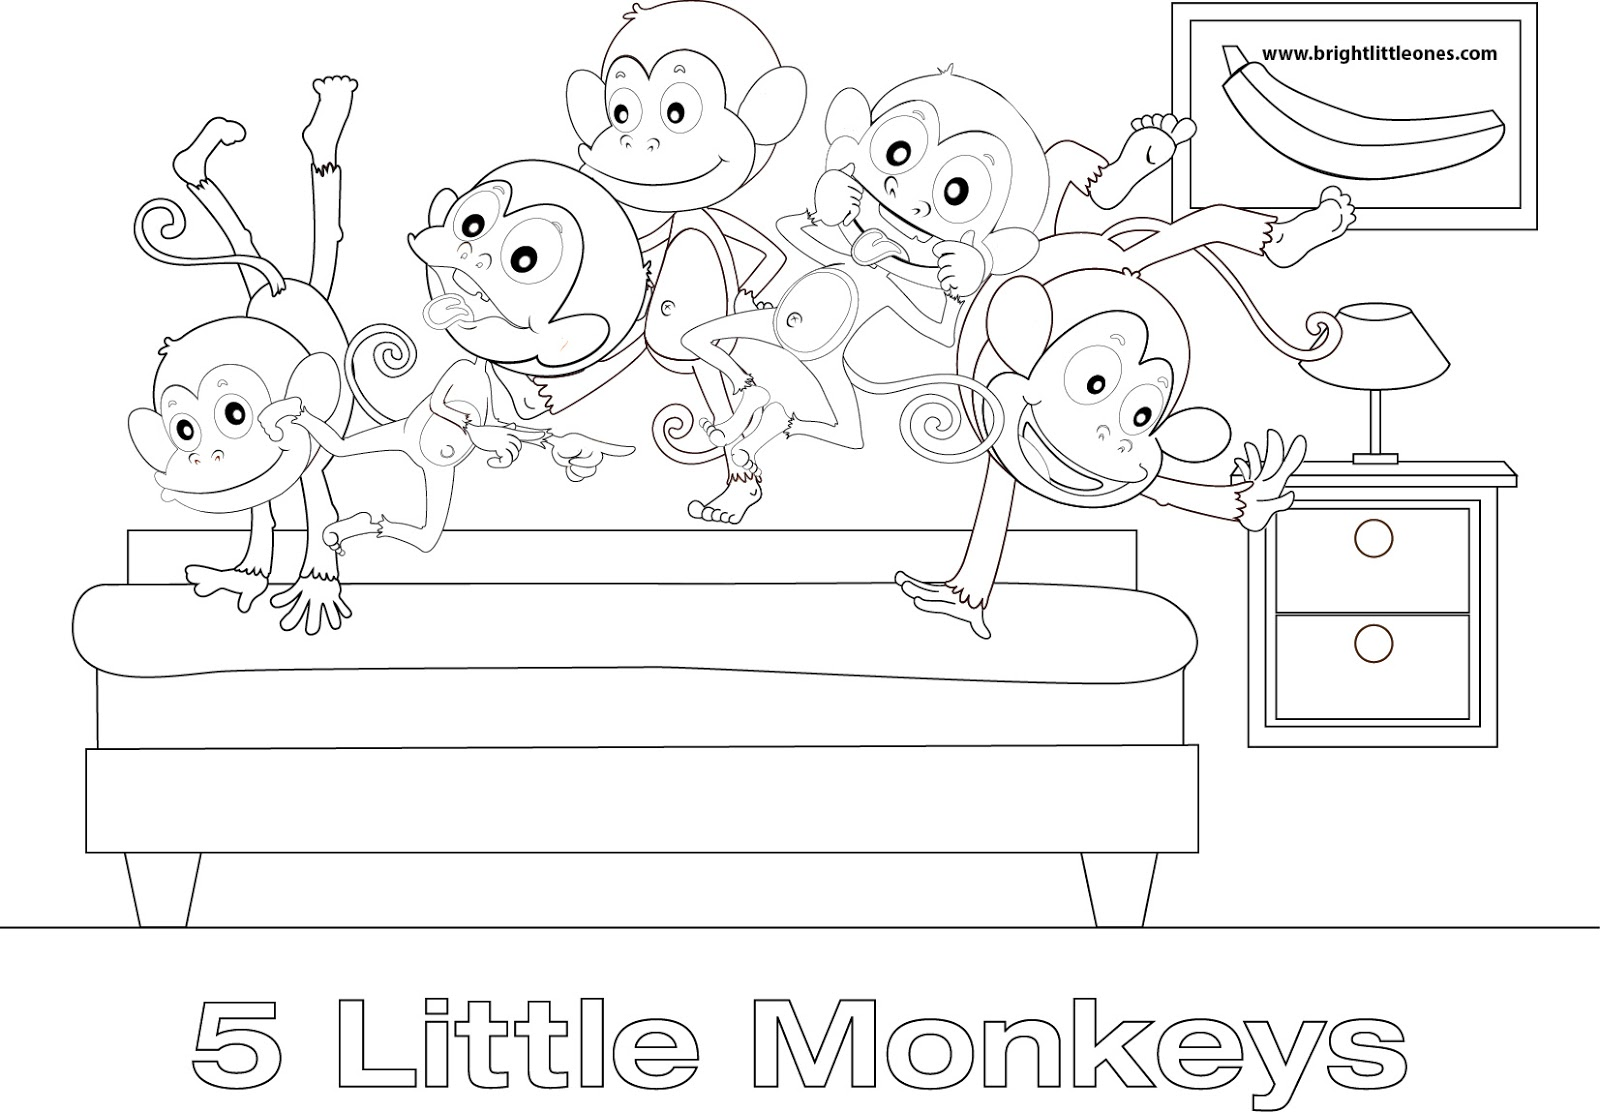 Phonics For Kids Monkey Trouble With The Letter M